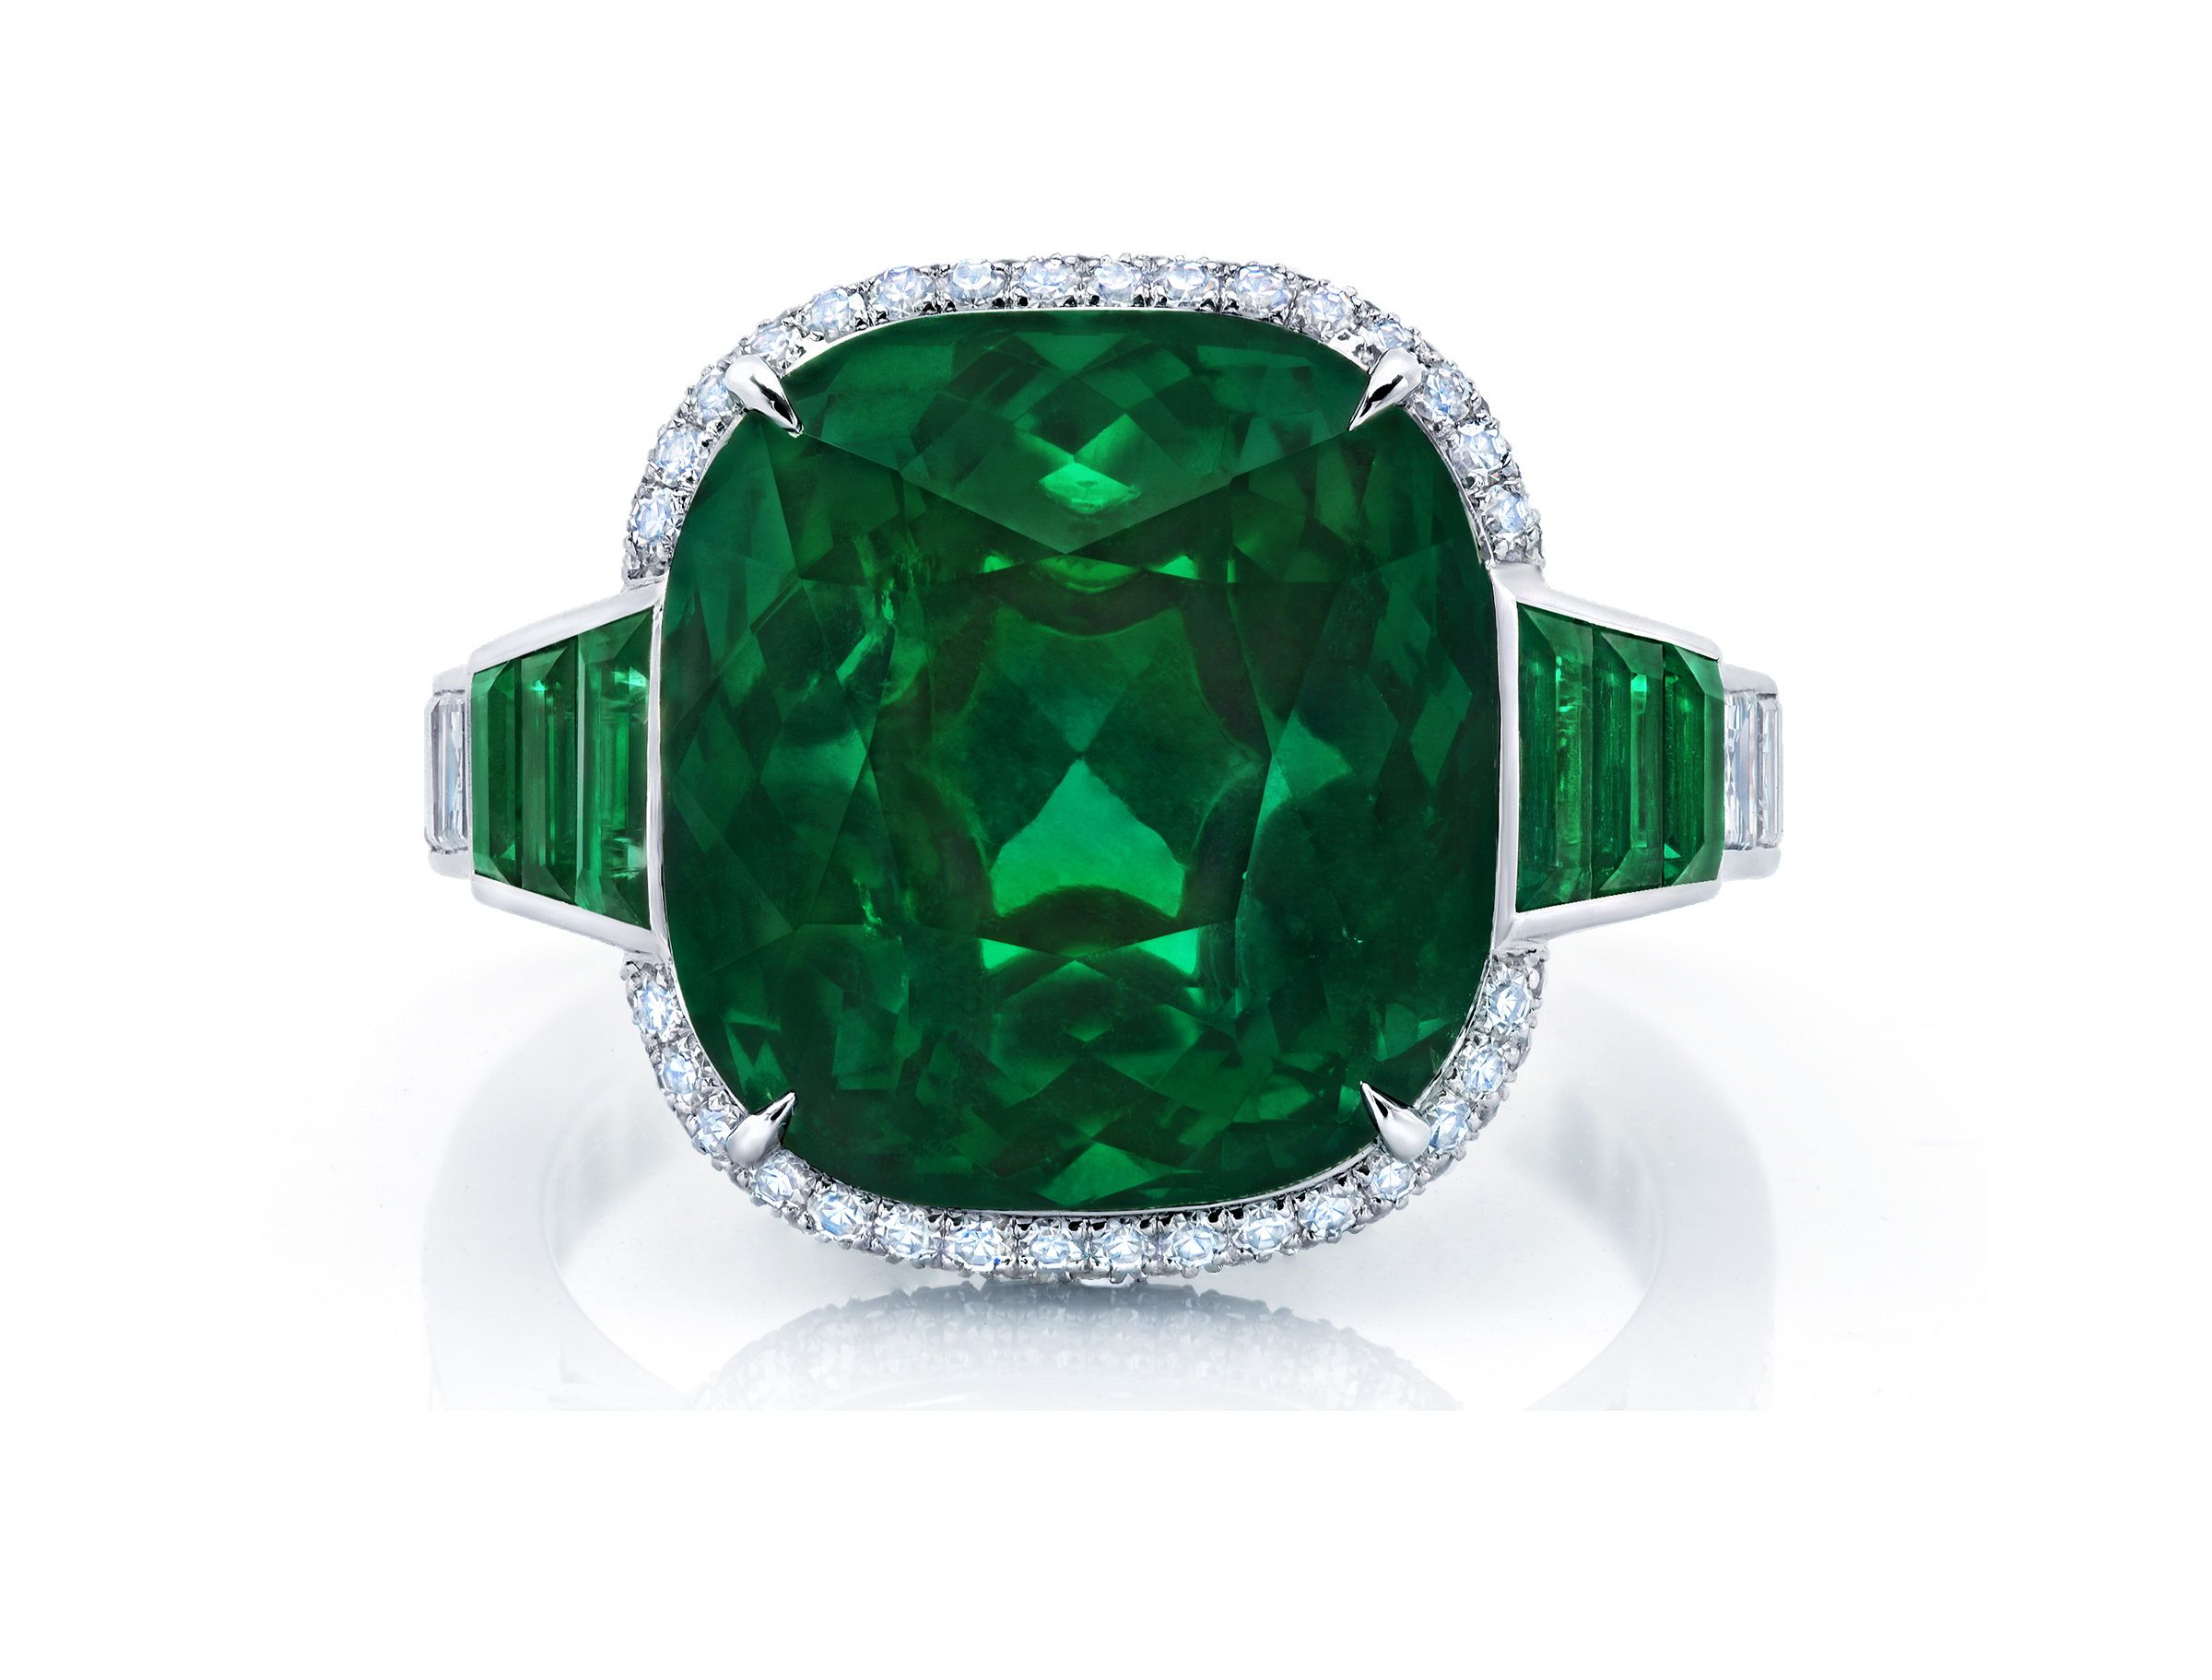 Martin Katz Cushion Shaped Emerald Accented With 6 Channel